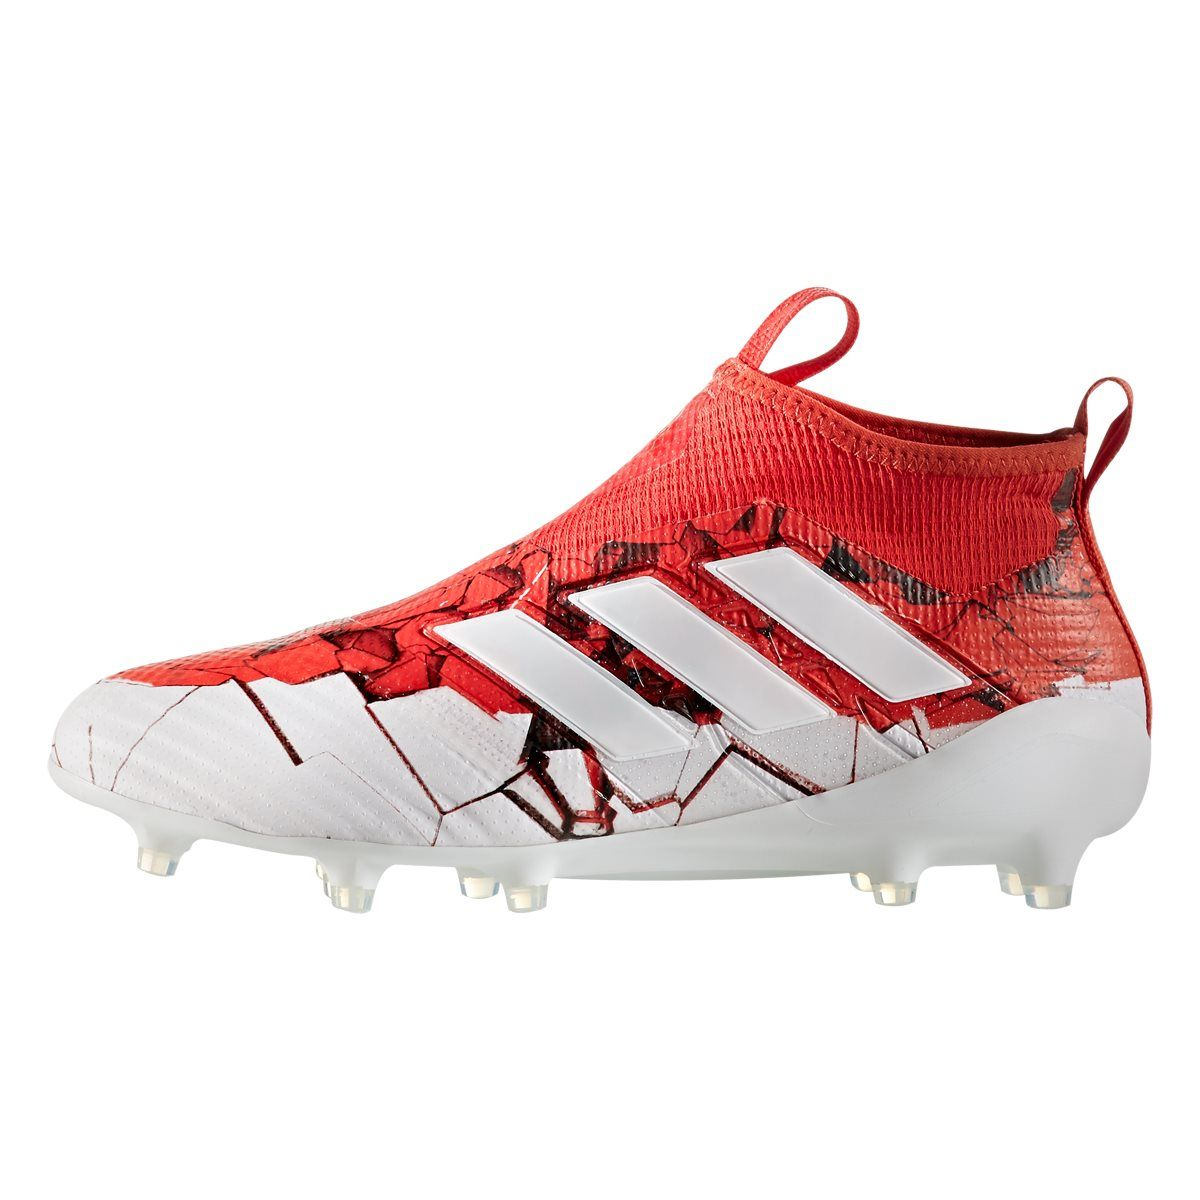 huge selection of 4ccbd 962fd adidas ACE 17+ Purecontrol FG Soccer Cleat - Confederations Cup